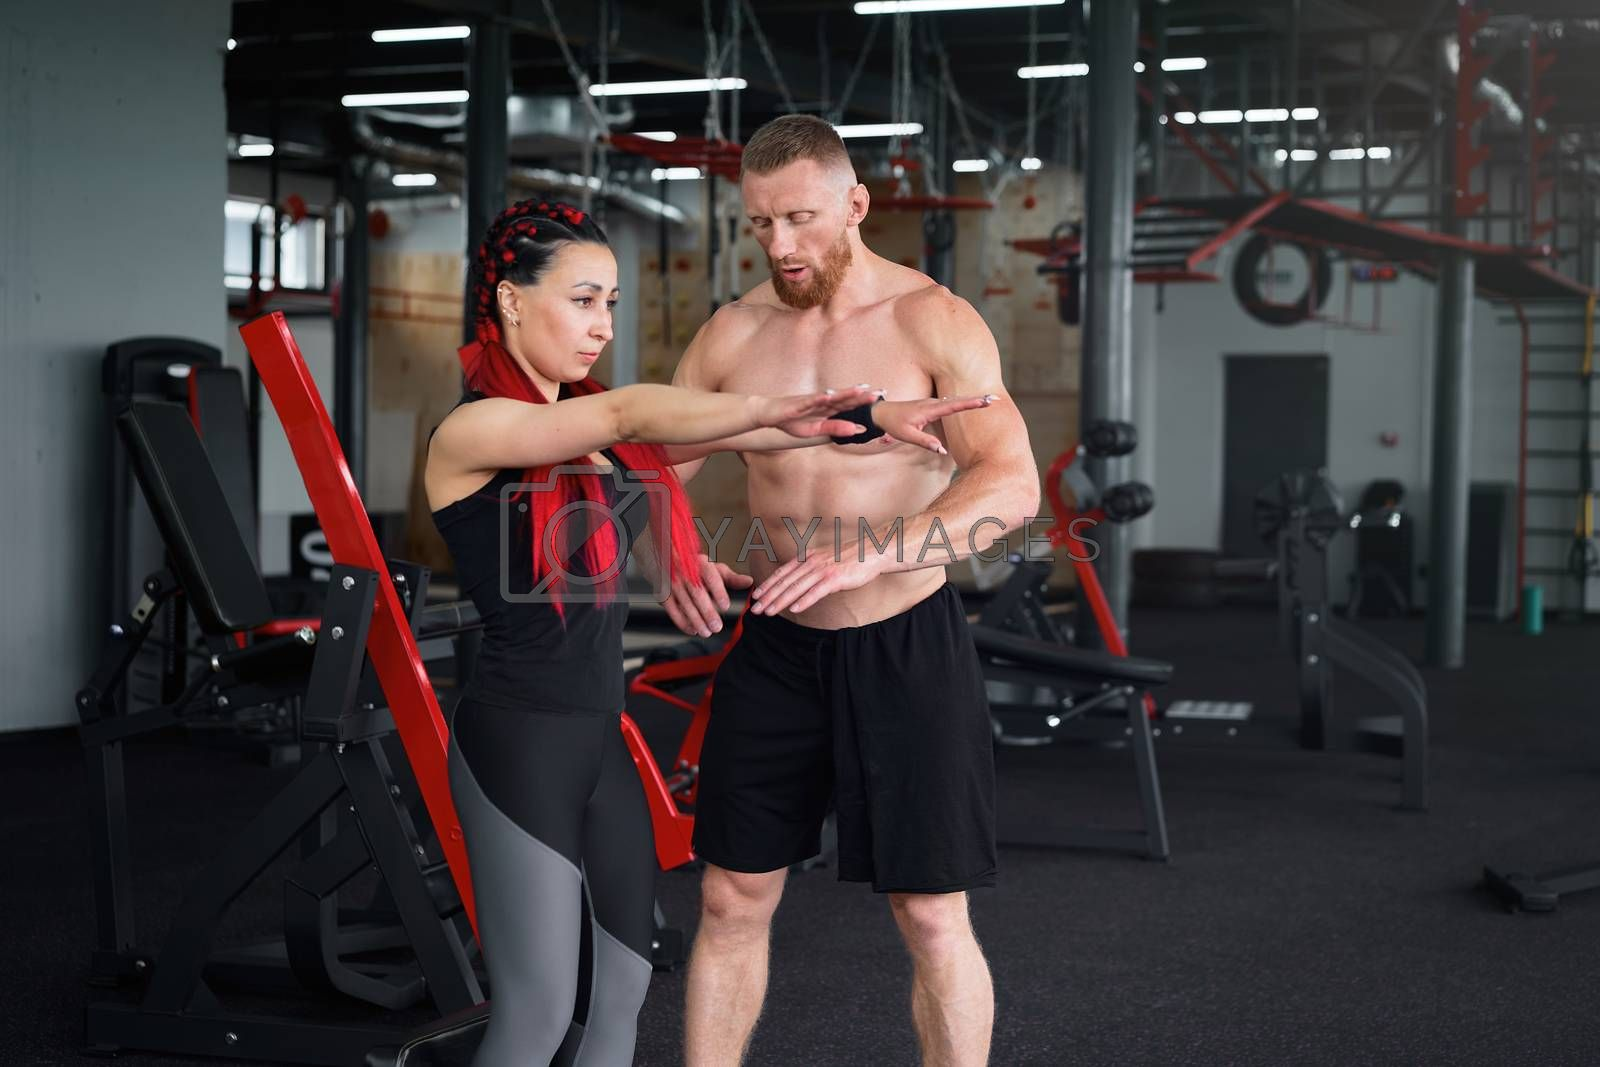 Personal trainer coach instructor athlete sportive man woman gym Boyfriend girlfriend training together Middle adult handsome sportsman people fitness exercising indoors. squats